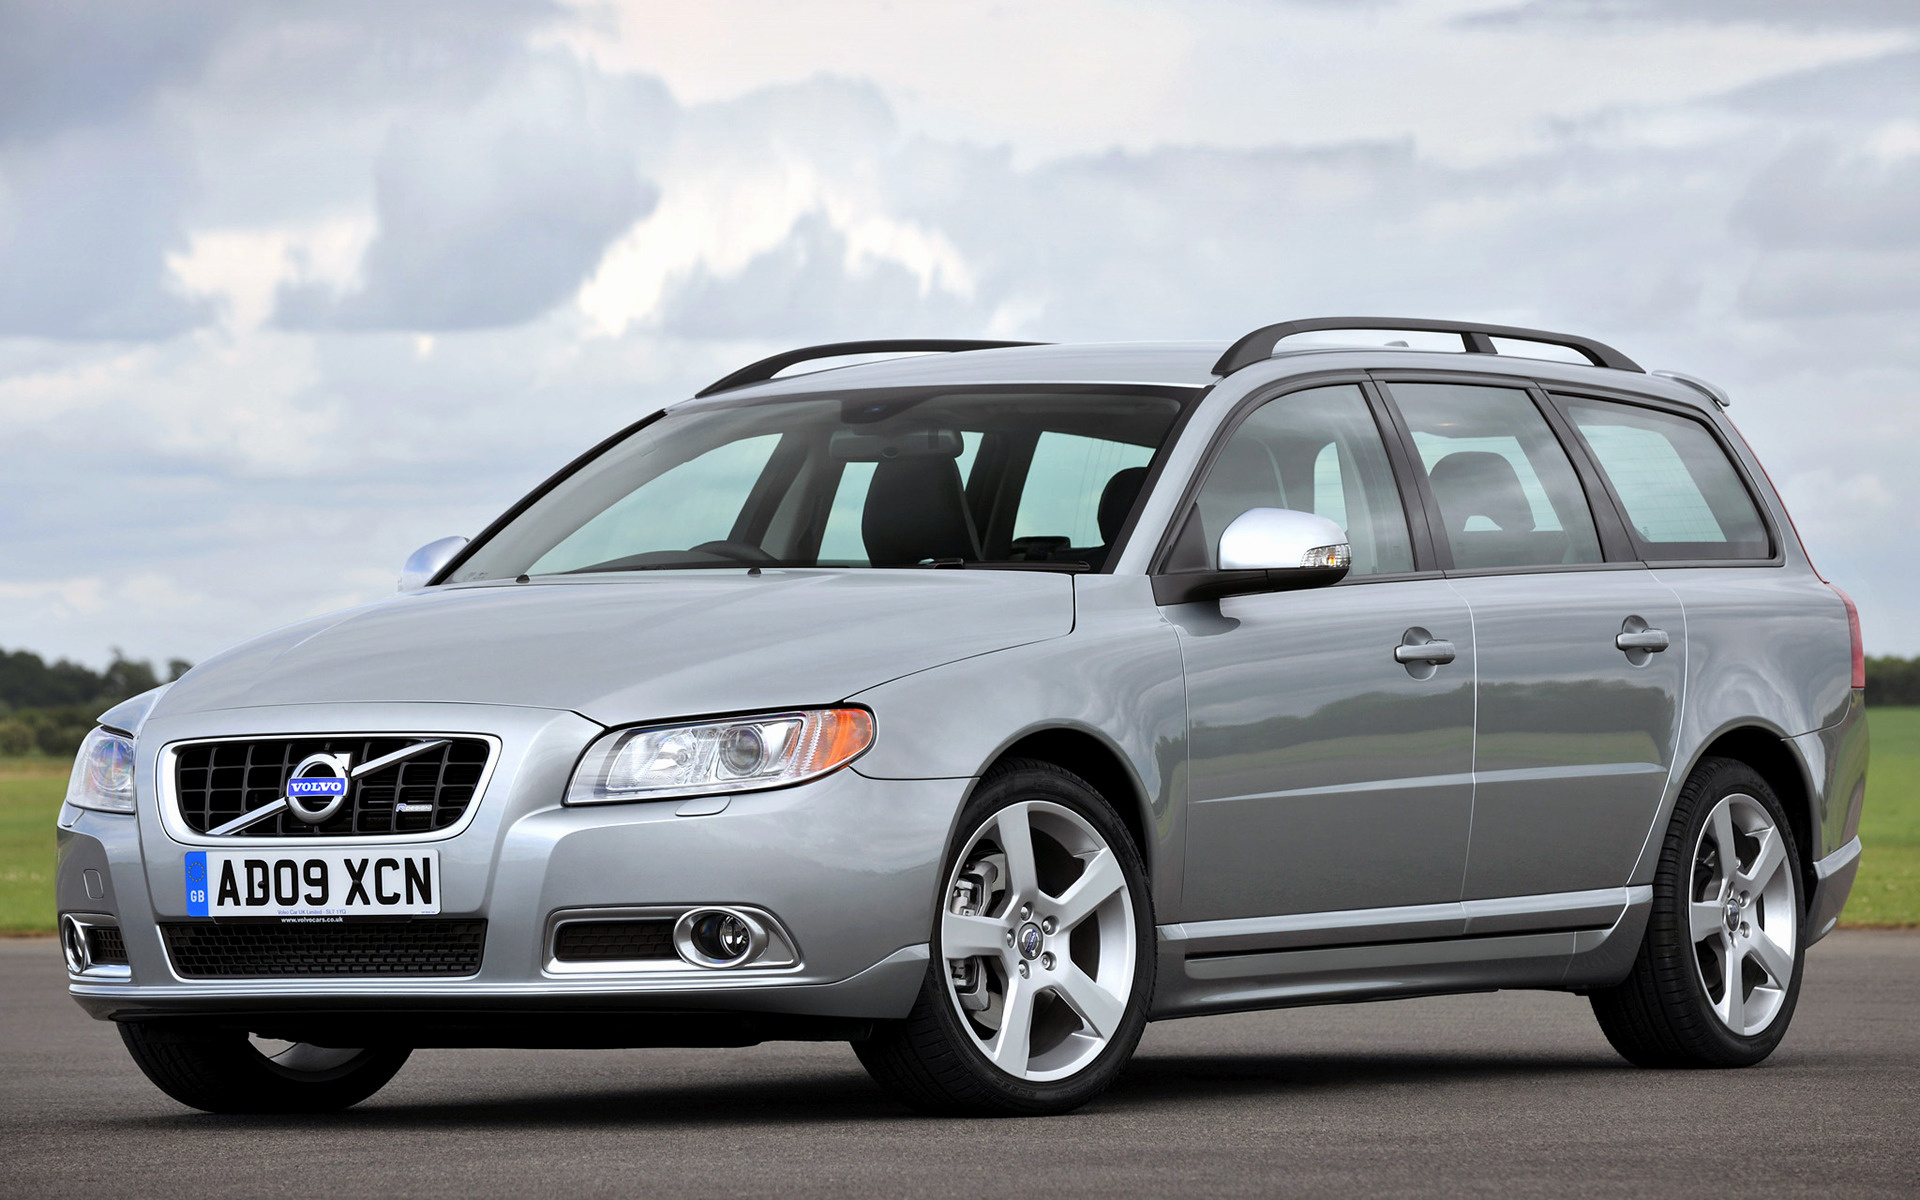 2009 Volvo V70 R-Design (UK) - Wallpapers and HD Images | Car Pixel